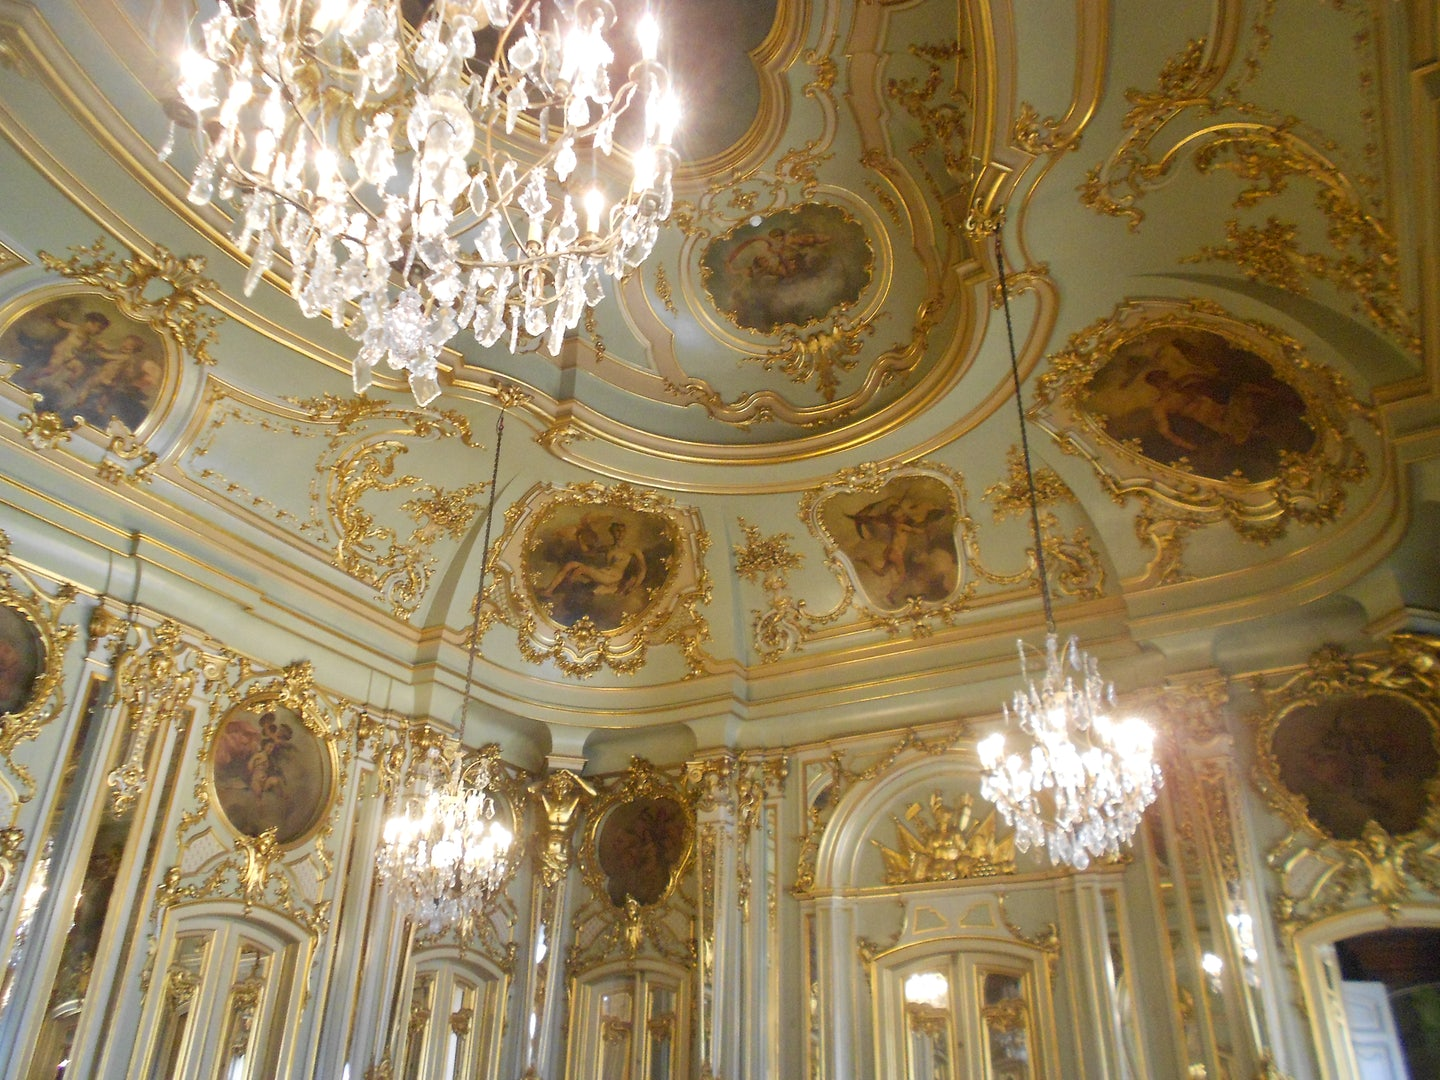 crystal chandelier and gold-plated ceiling at Palacio Foz